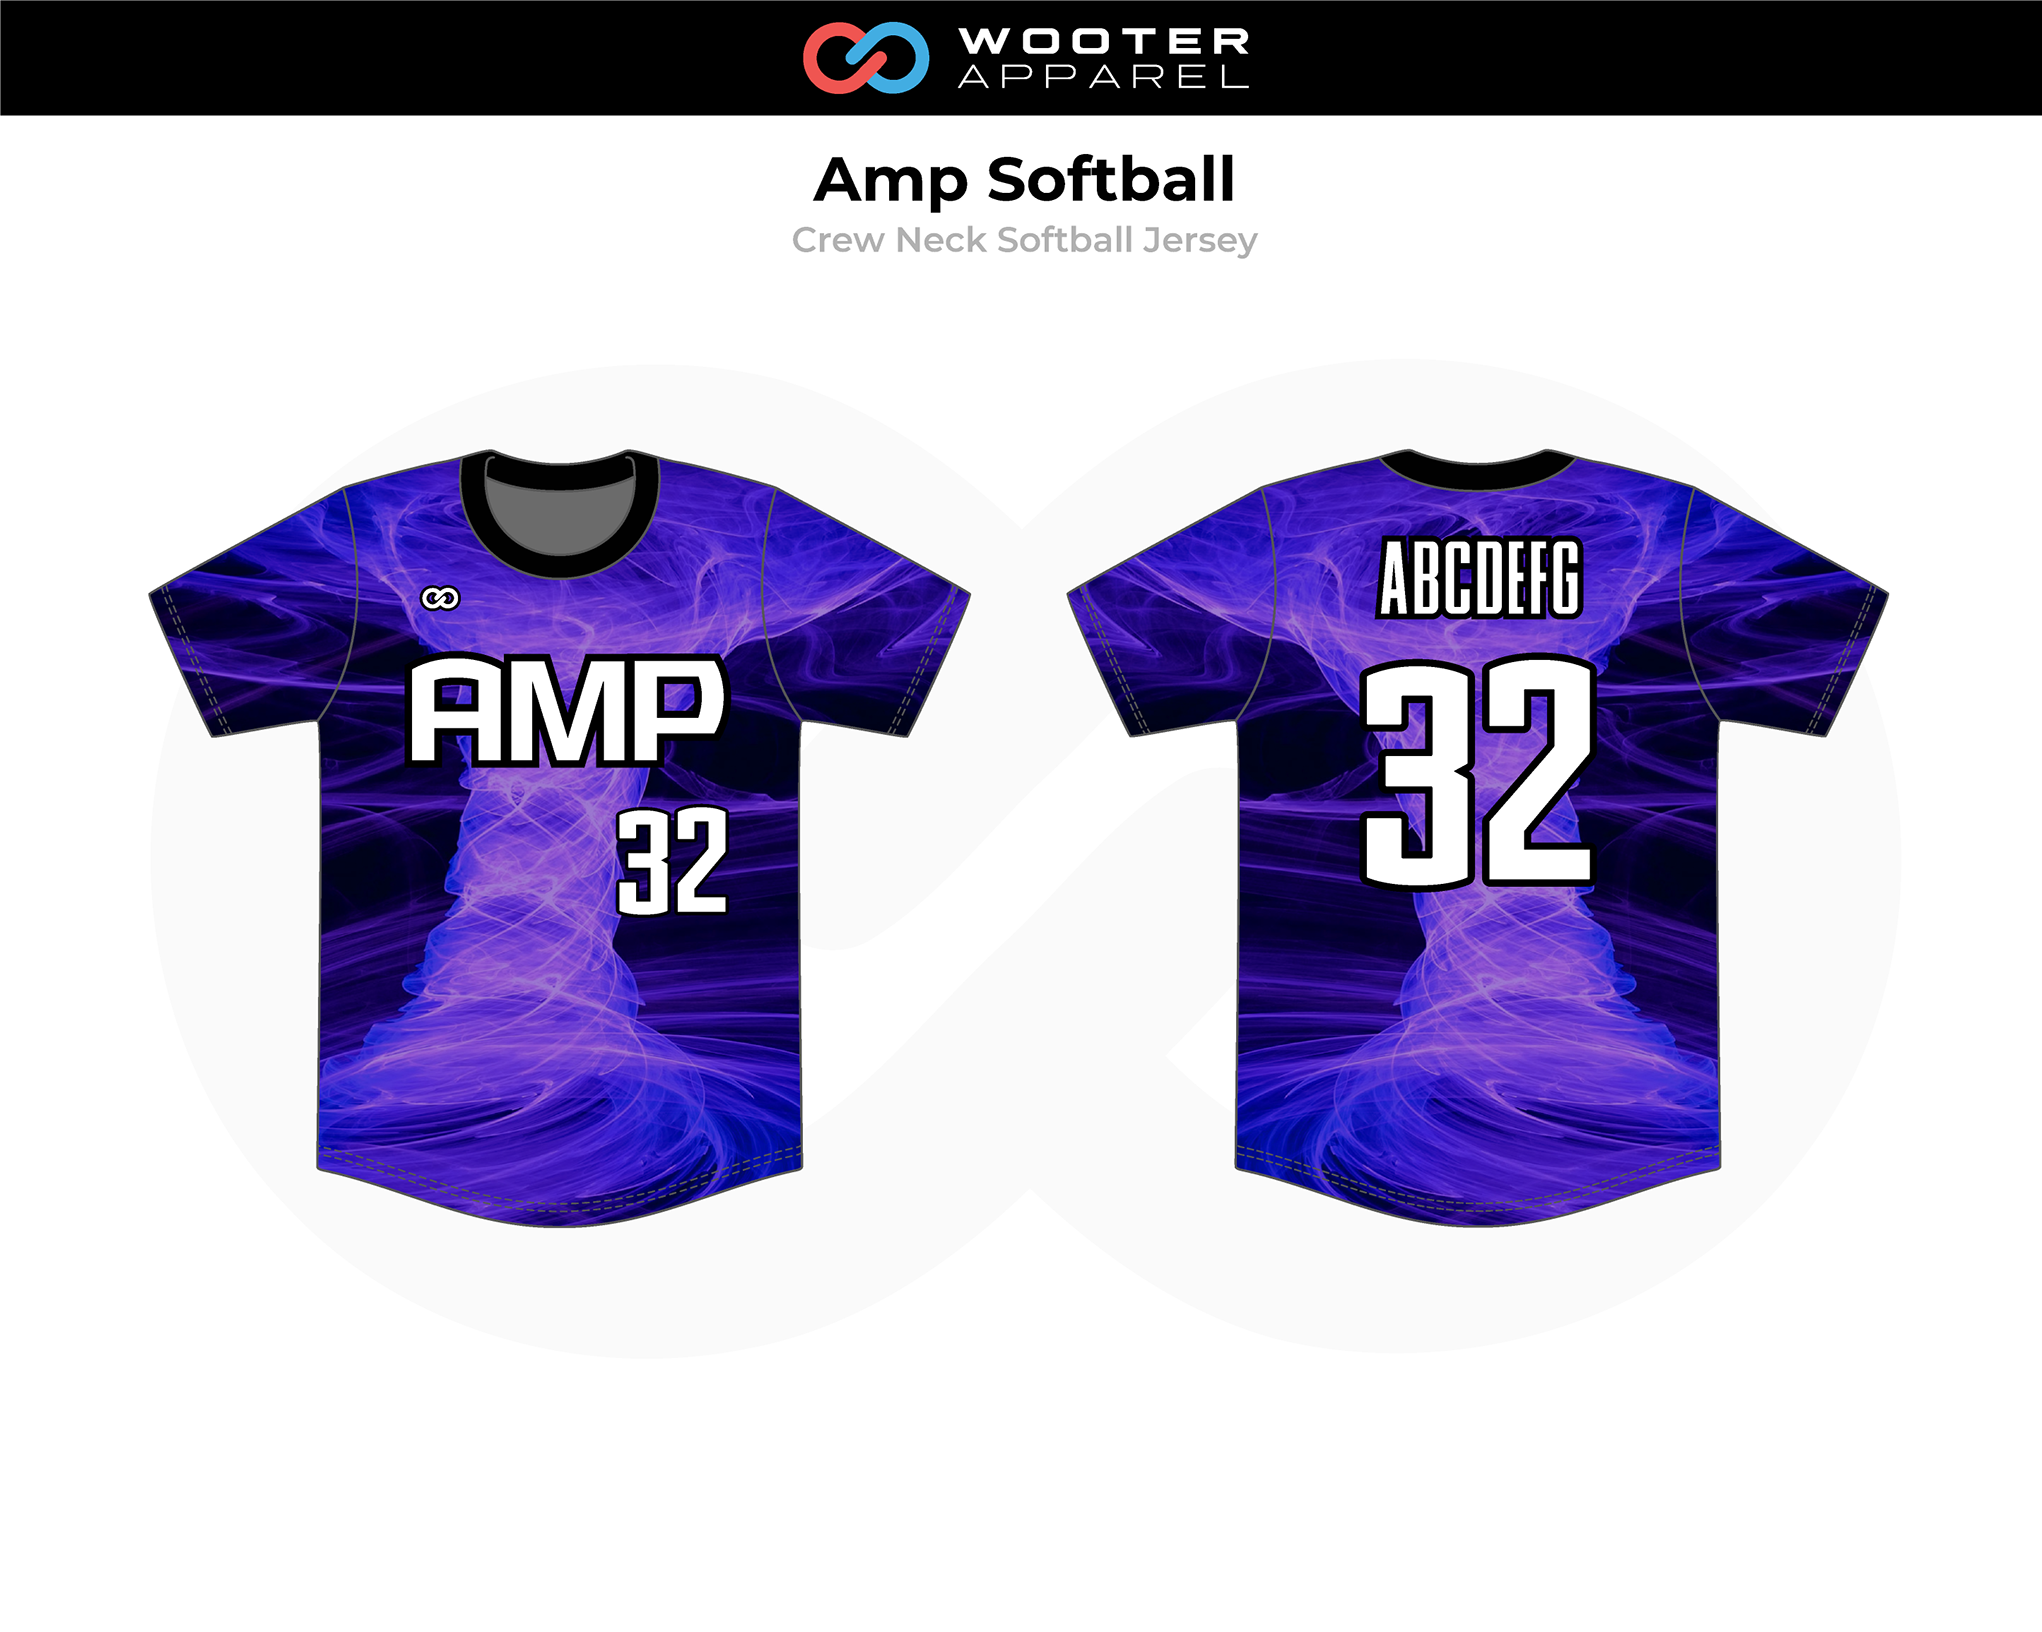 2019-02-18 Amp Softball Crew-Neck Pullover Jersey.png